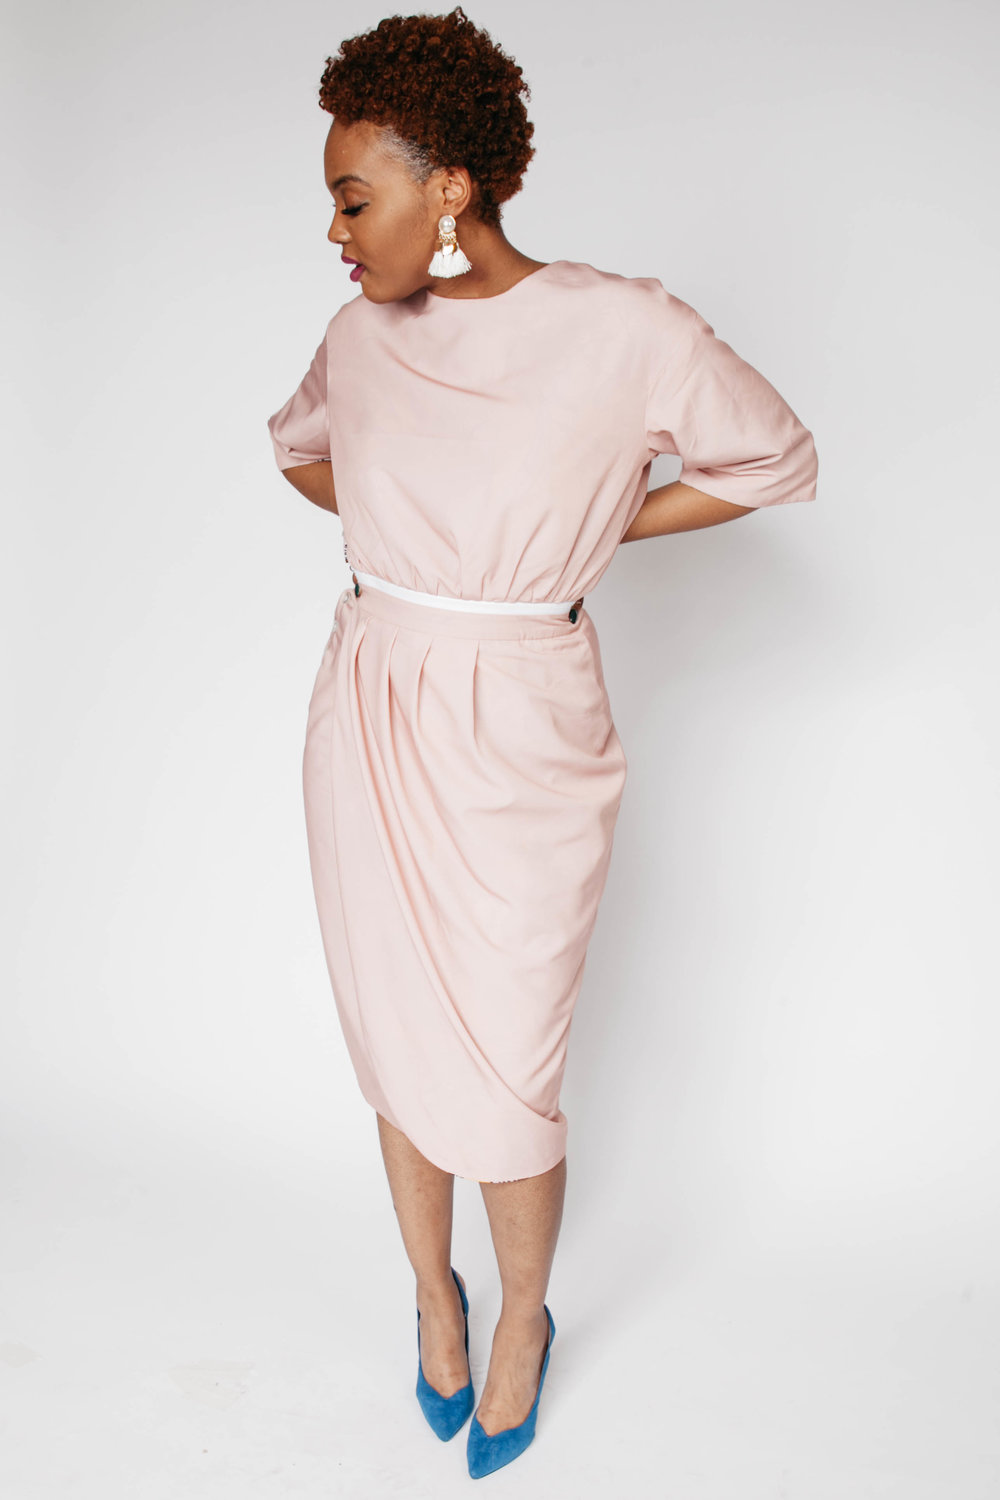 The Tiana Dress